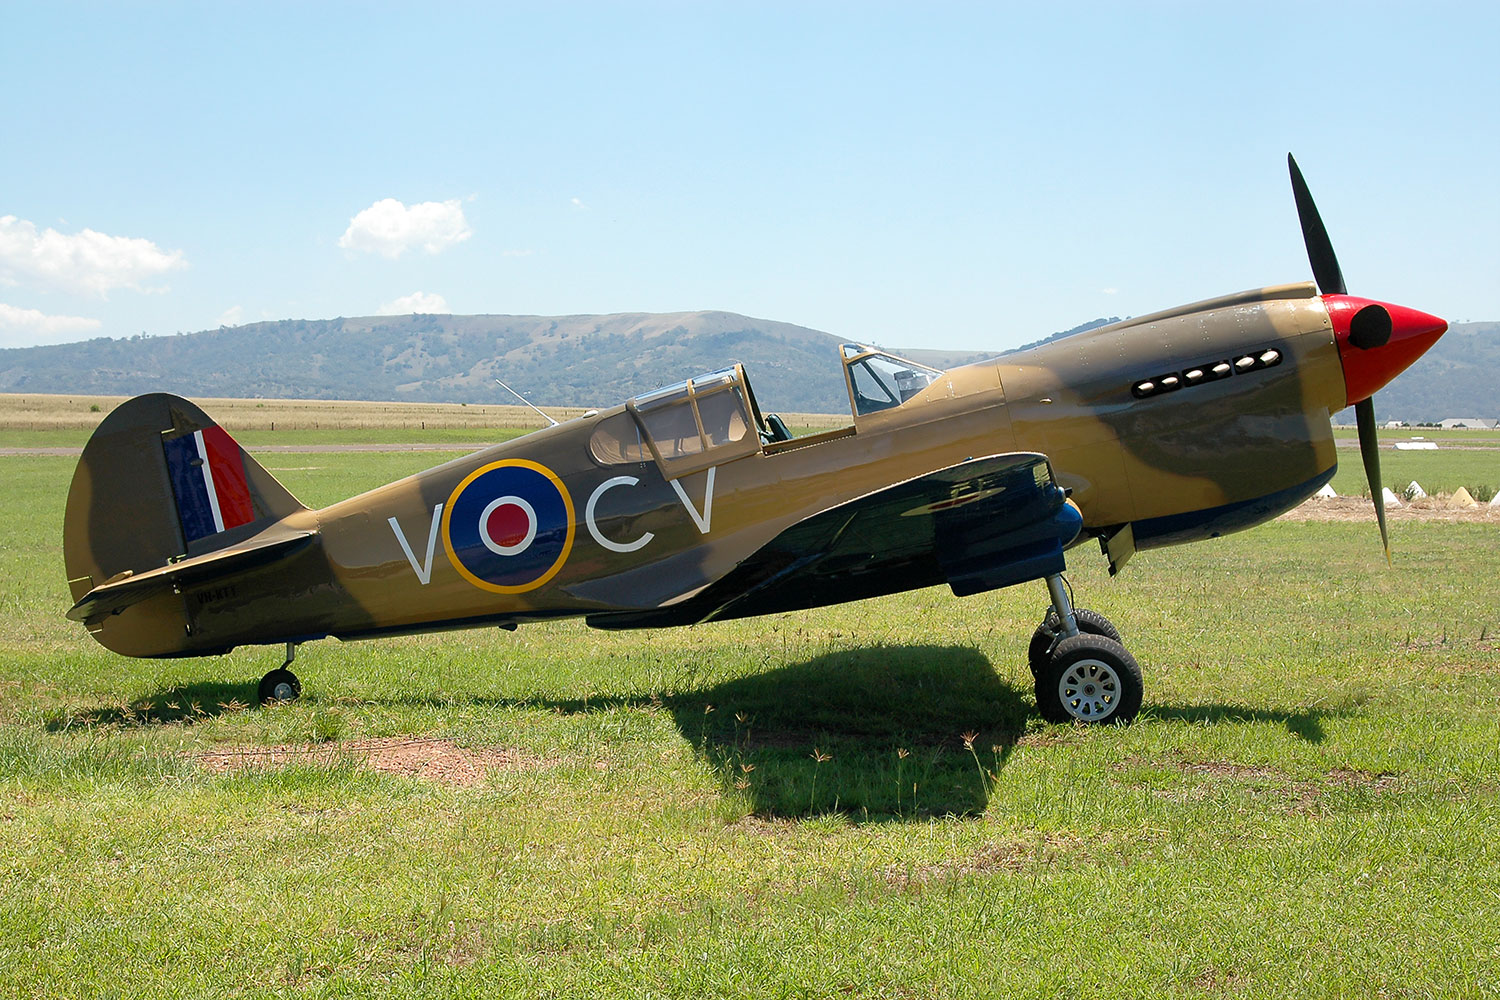 P40E Kittyhawk VH-KTY at Vintage Fighter Restorations, Scone NSW